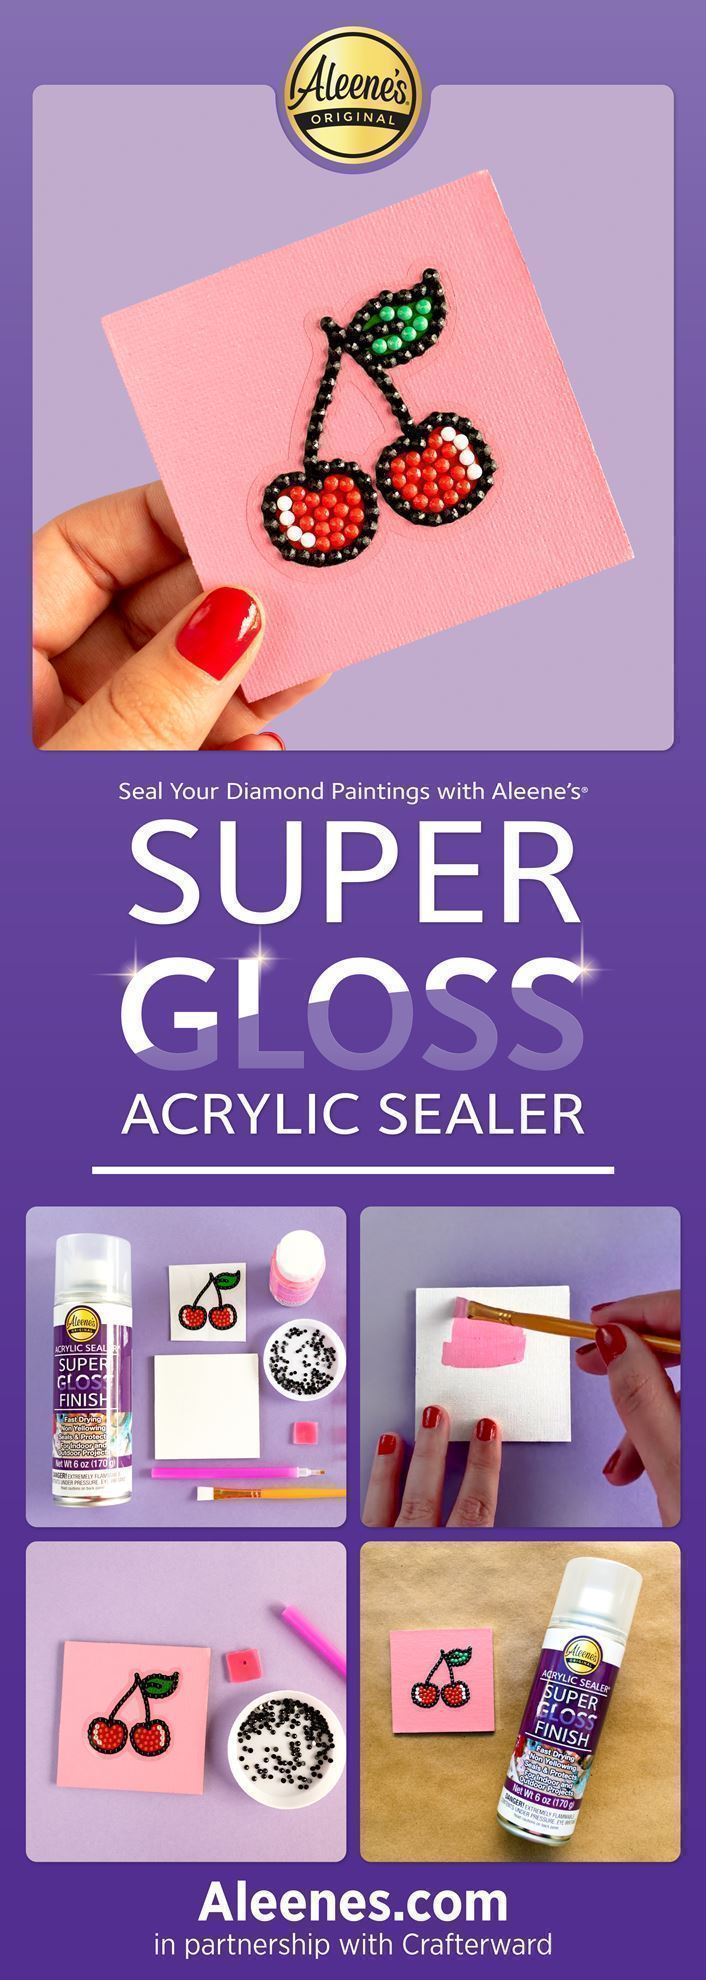 How to Seal a Diamond Painting with Spray Sealer